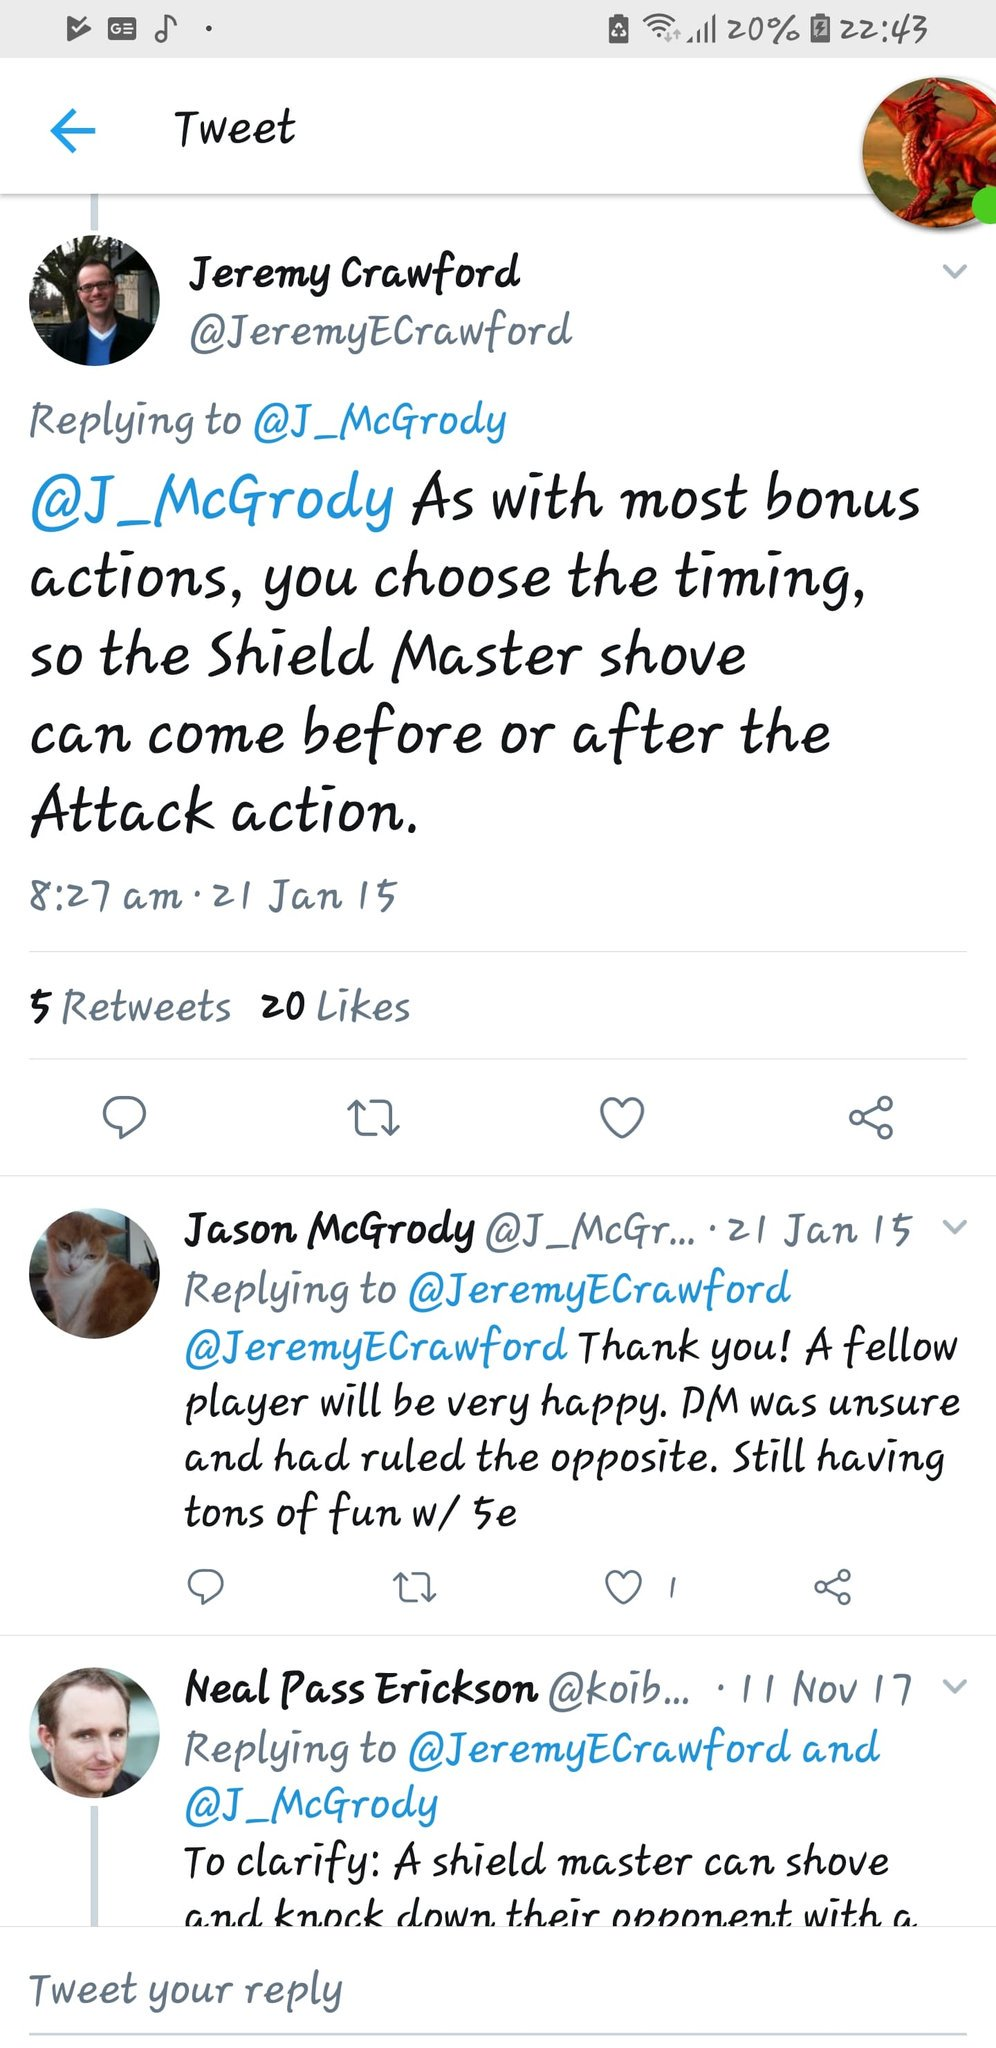 Chris Taylor On Twitter Jeremyecrawford You Ve Given Two Answer To Same Question Also If You Have Multiple Attacks Can You Attack Shove Attack Https T Co Is80kwplr6 In this video guide, we're covering the actions in combat you can take in dungeons and dragons 5th edition.combat is one of the. twitter